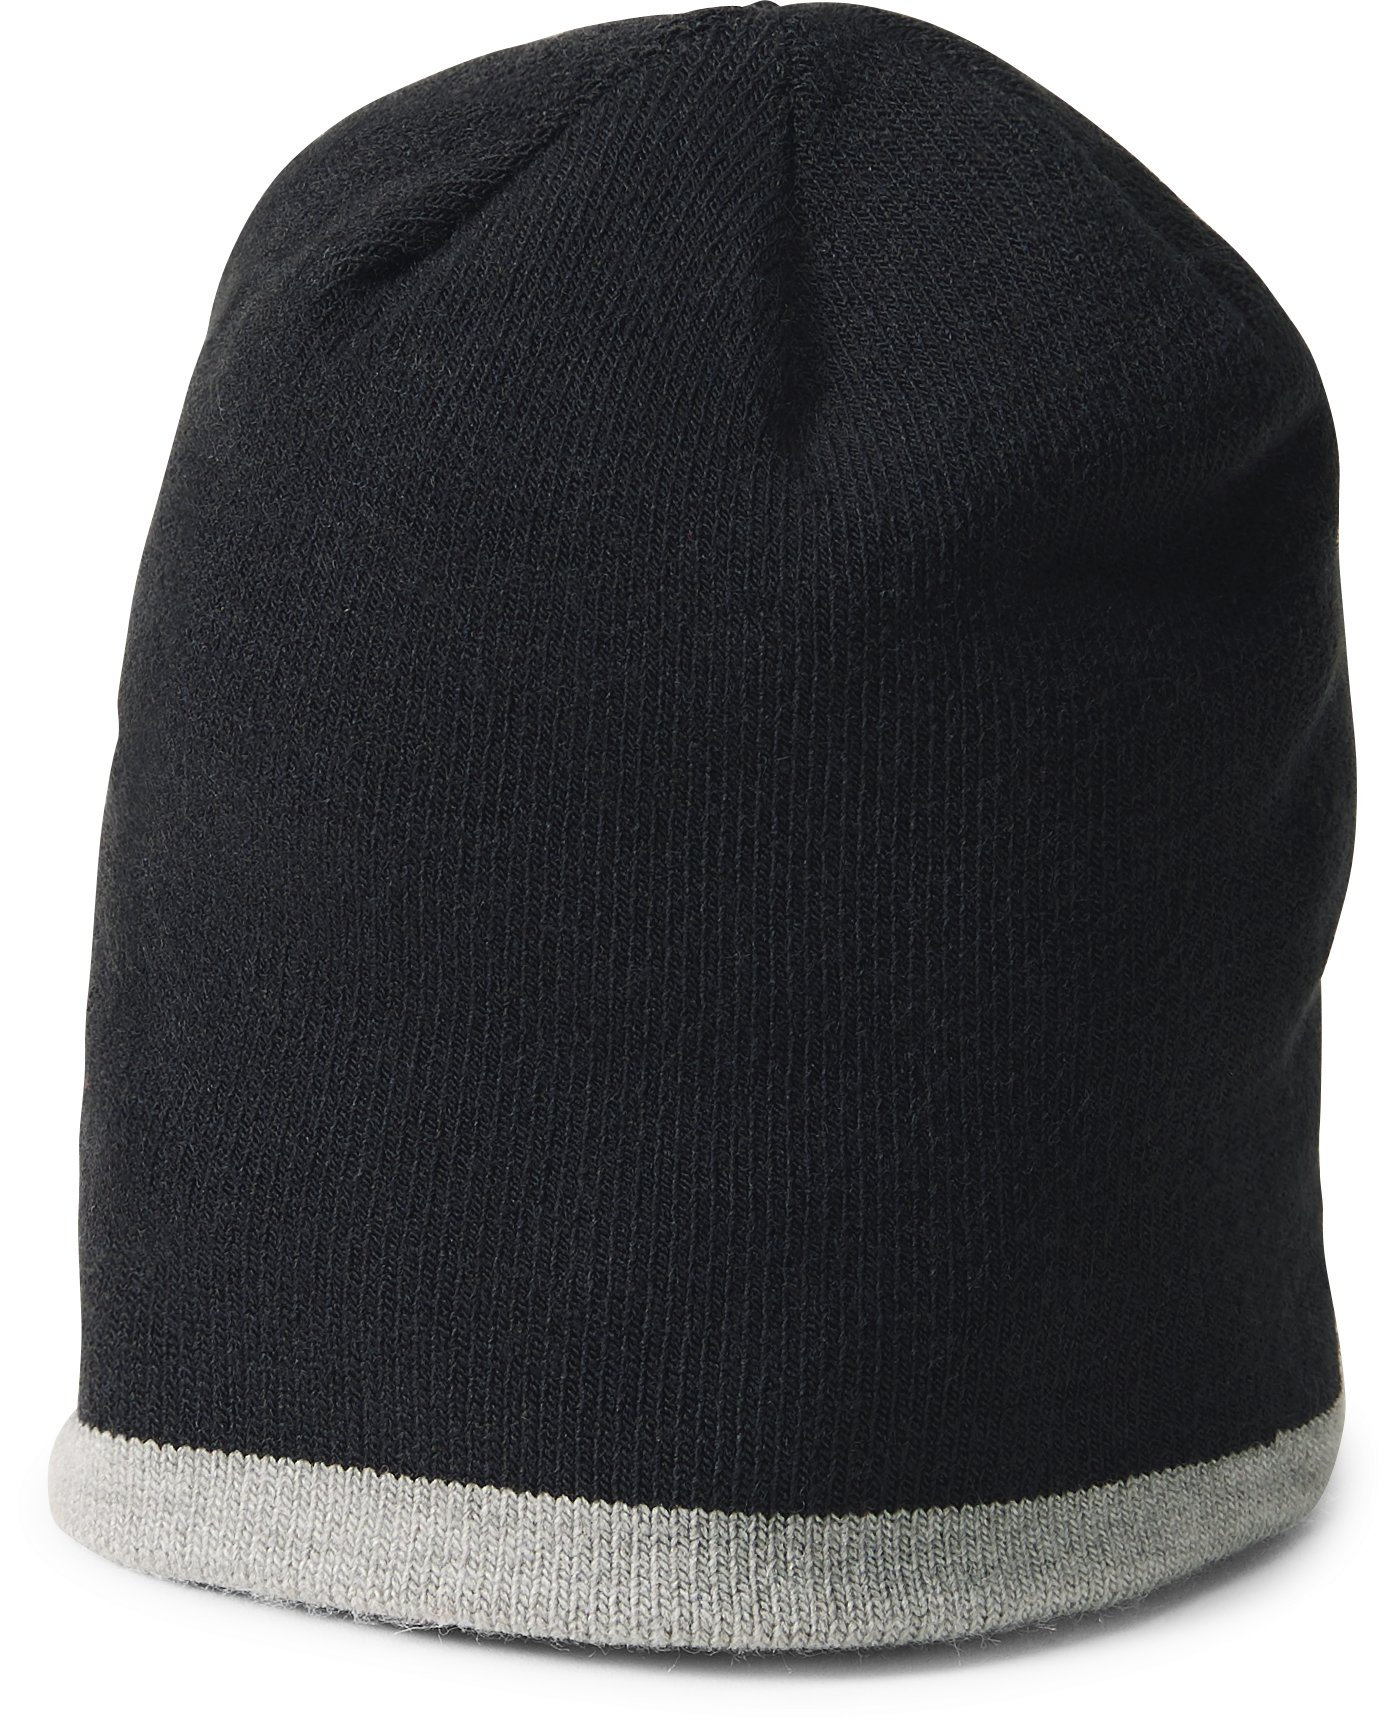 Boys' Pre-School UA Double Layer Reversible Beanie, Black